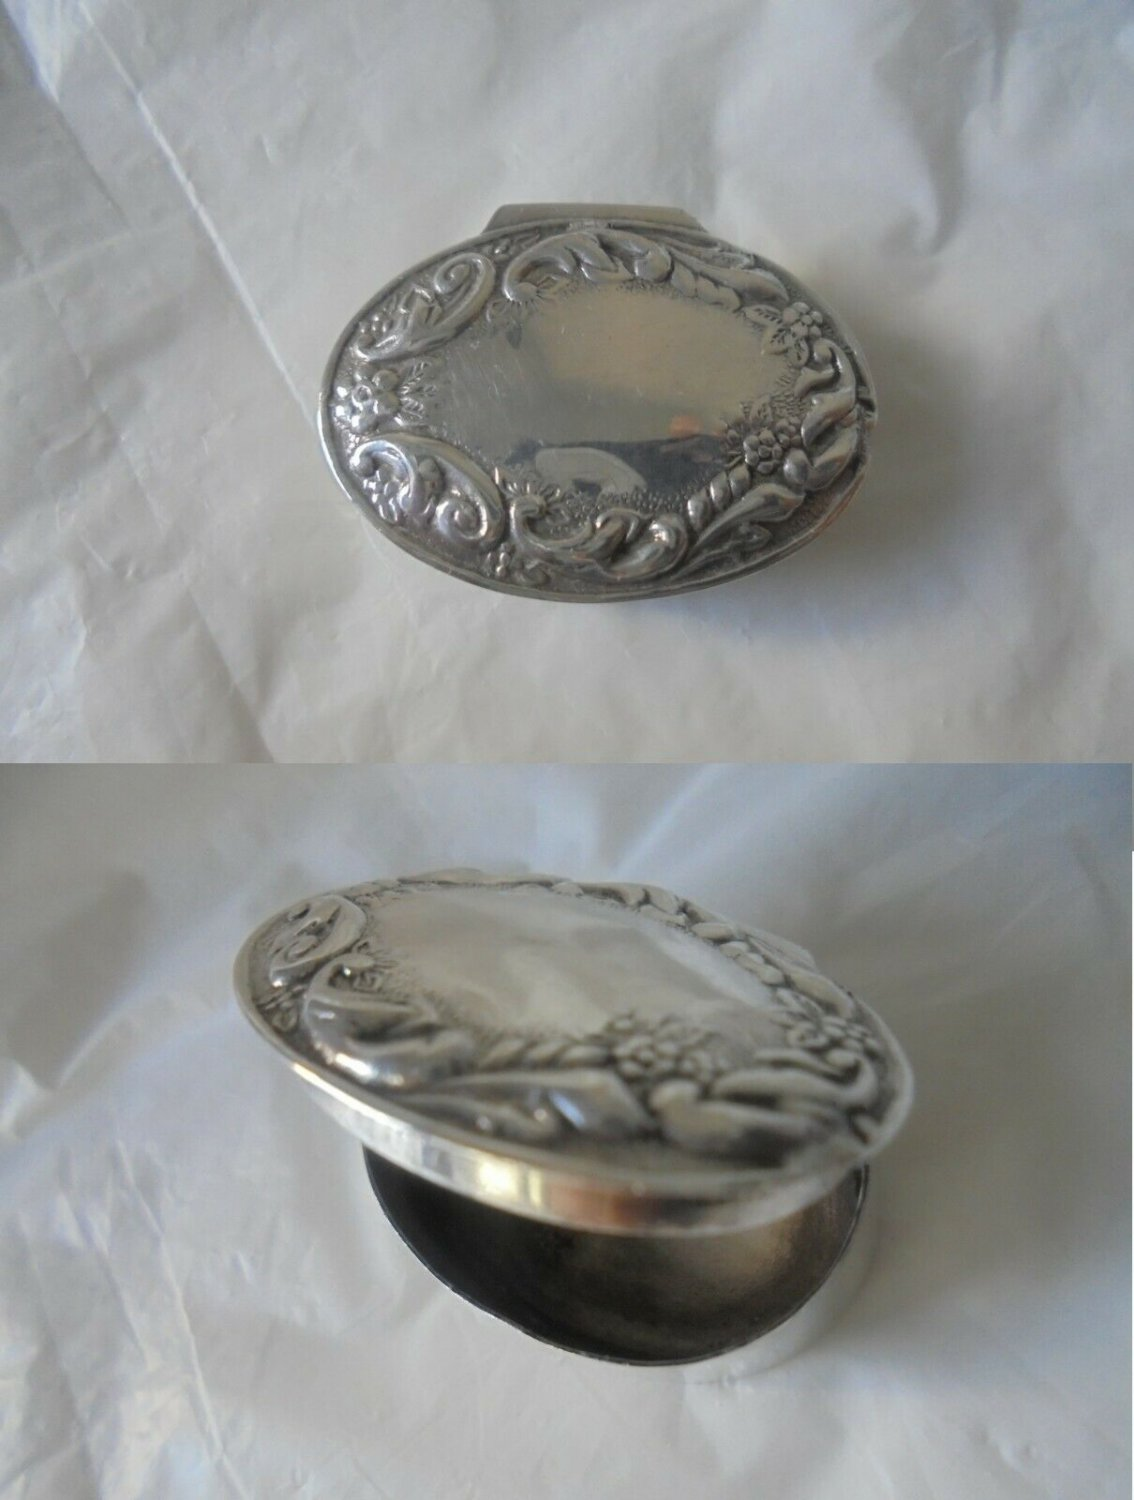 PILL BOX IN STERLING SILVER 925 MADE BY DP DOUGLAS PELL FROM 1980s